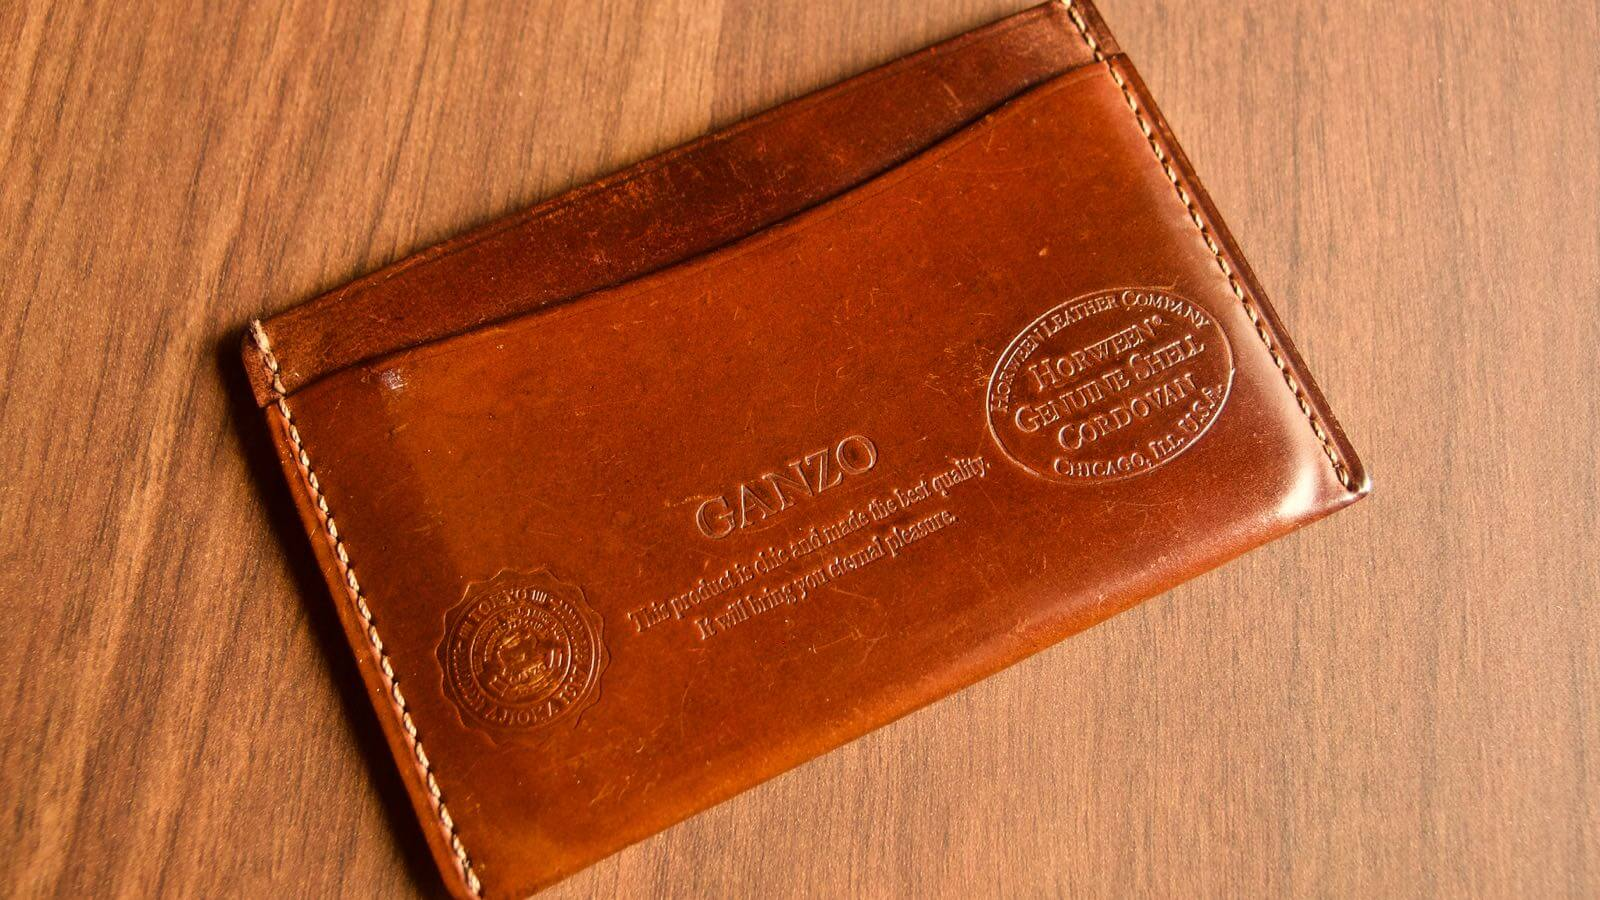 0037 Ganzo Shell Code Bank Business Card Holder 5 Years Aging 08